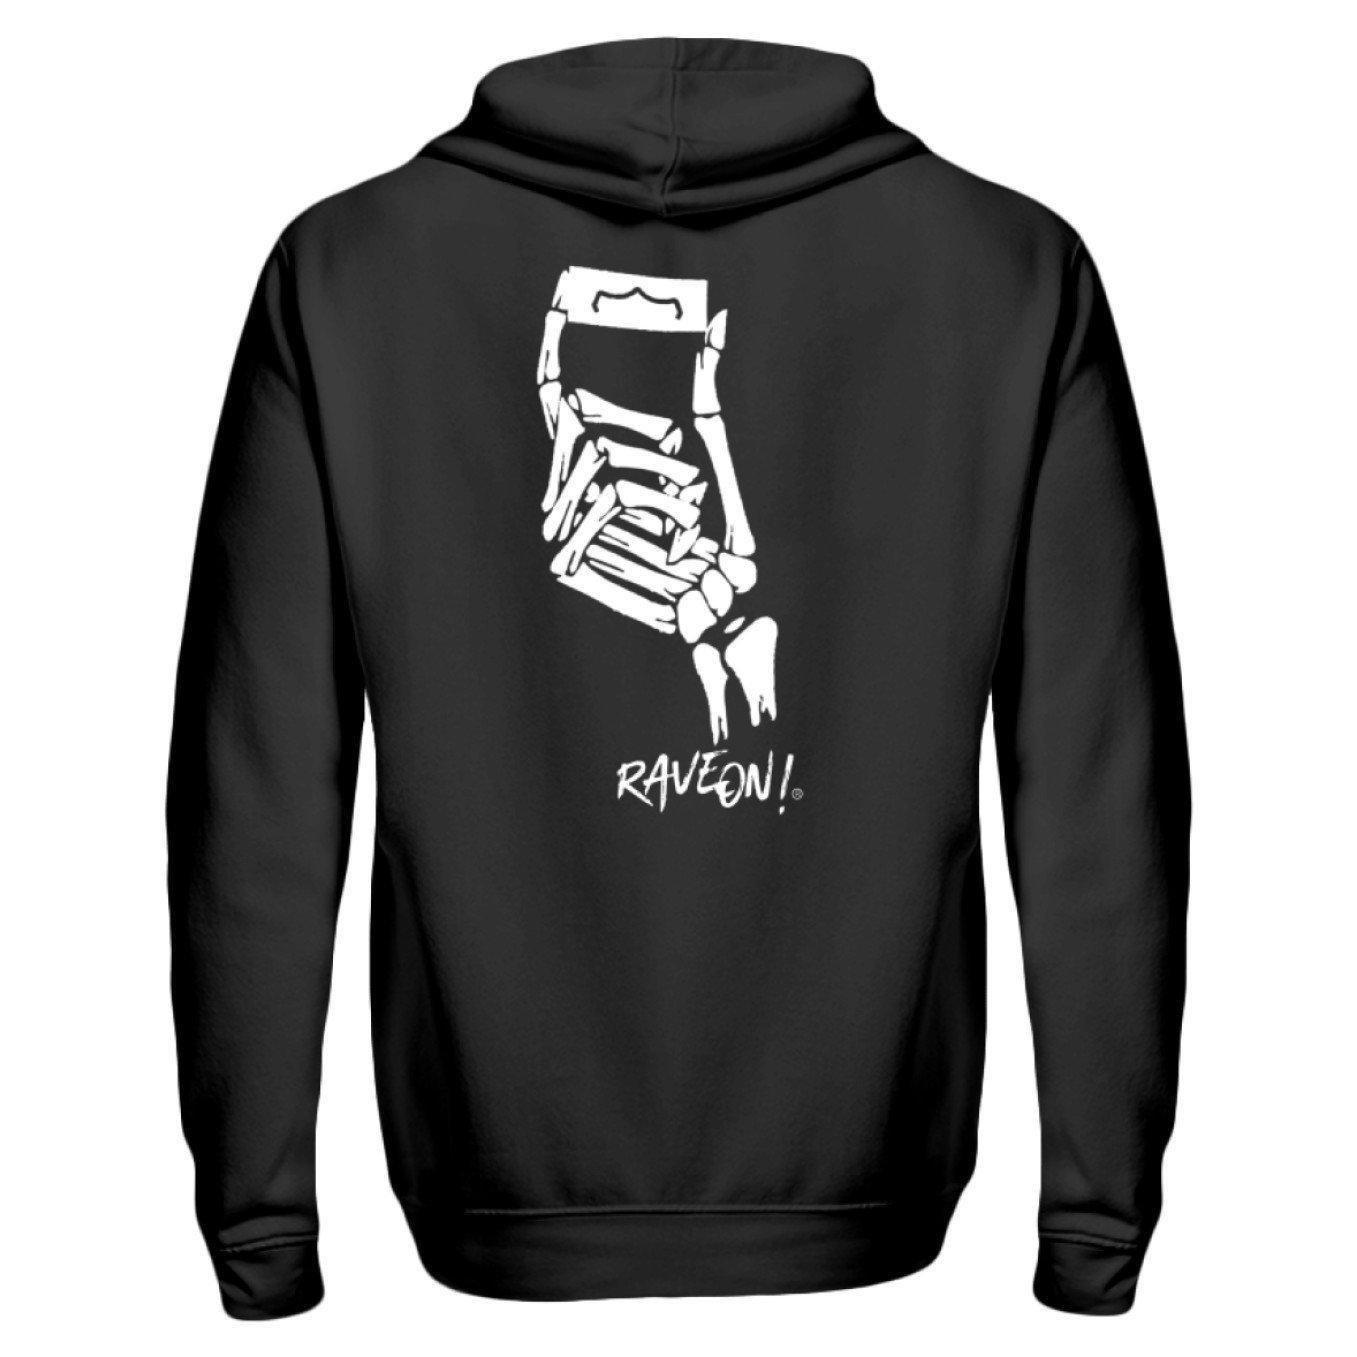 Skullblade - Rave On!® - Zip-Hoodie ZipperB S - Rave On!® the club & techno scene shop for cool young fashion streetwear style & fashion outfits + sexy festival 420 stuff